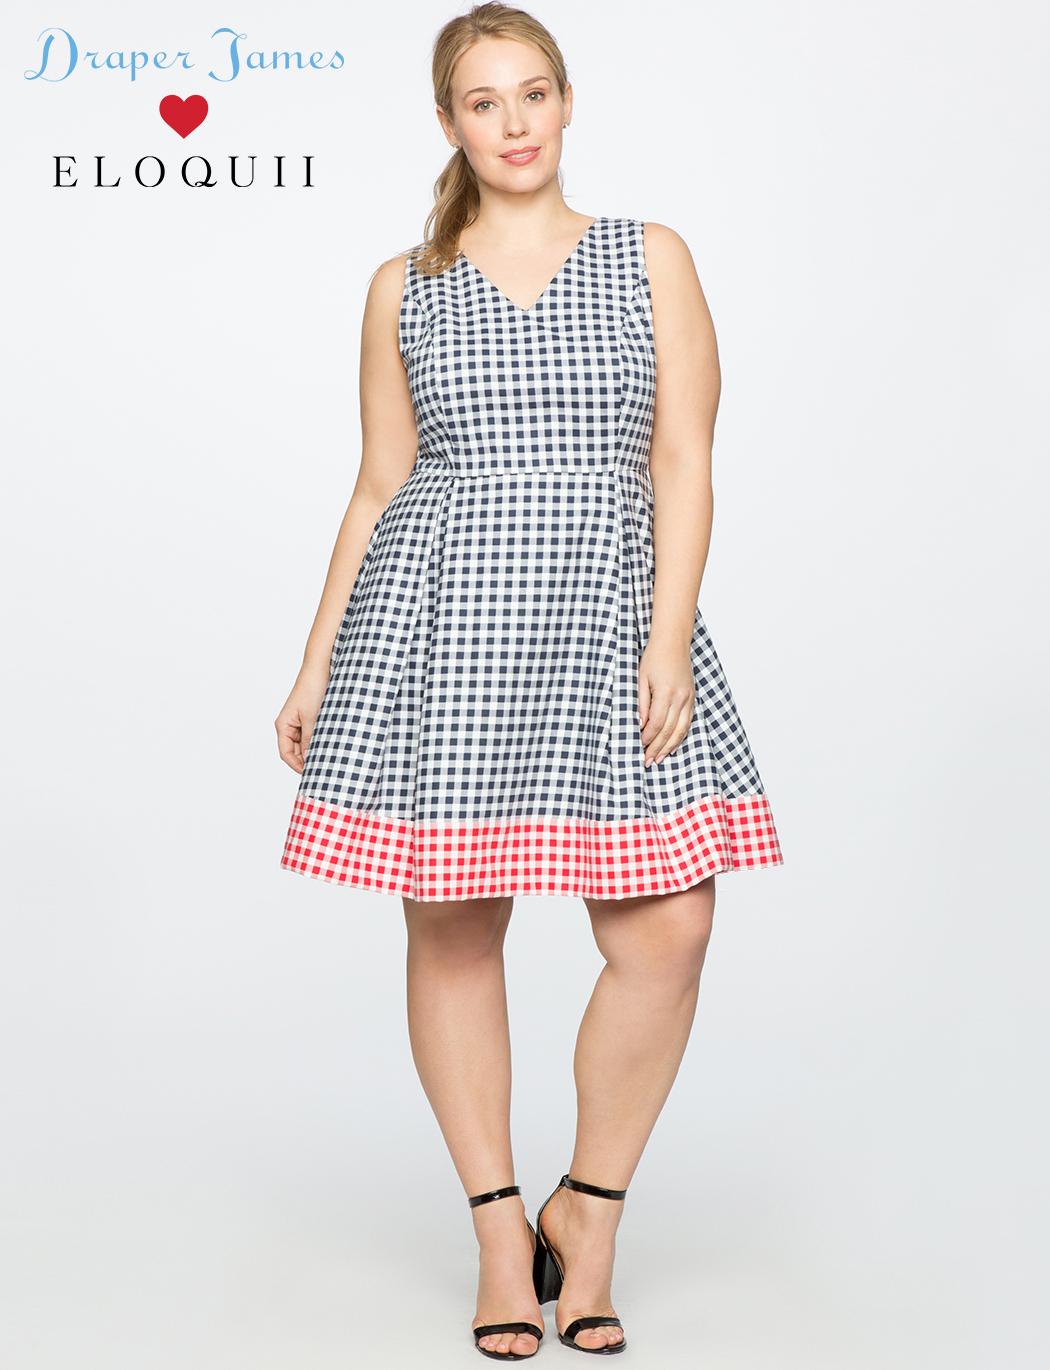 Draper James for ELOQUII Gingham Blocked Fit & Flare Dress